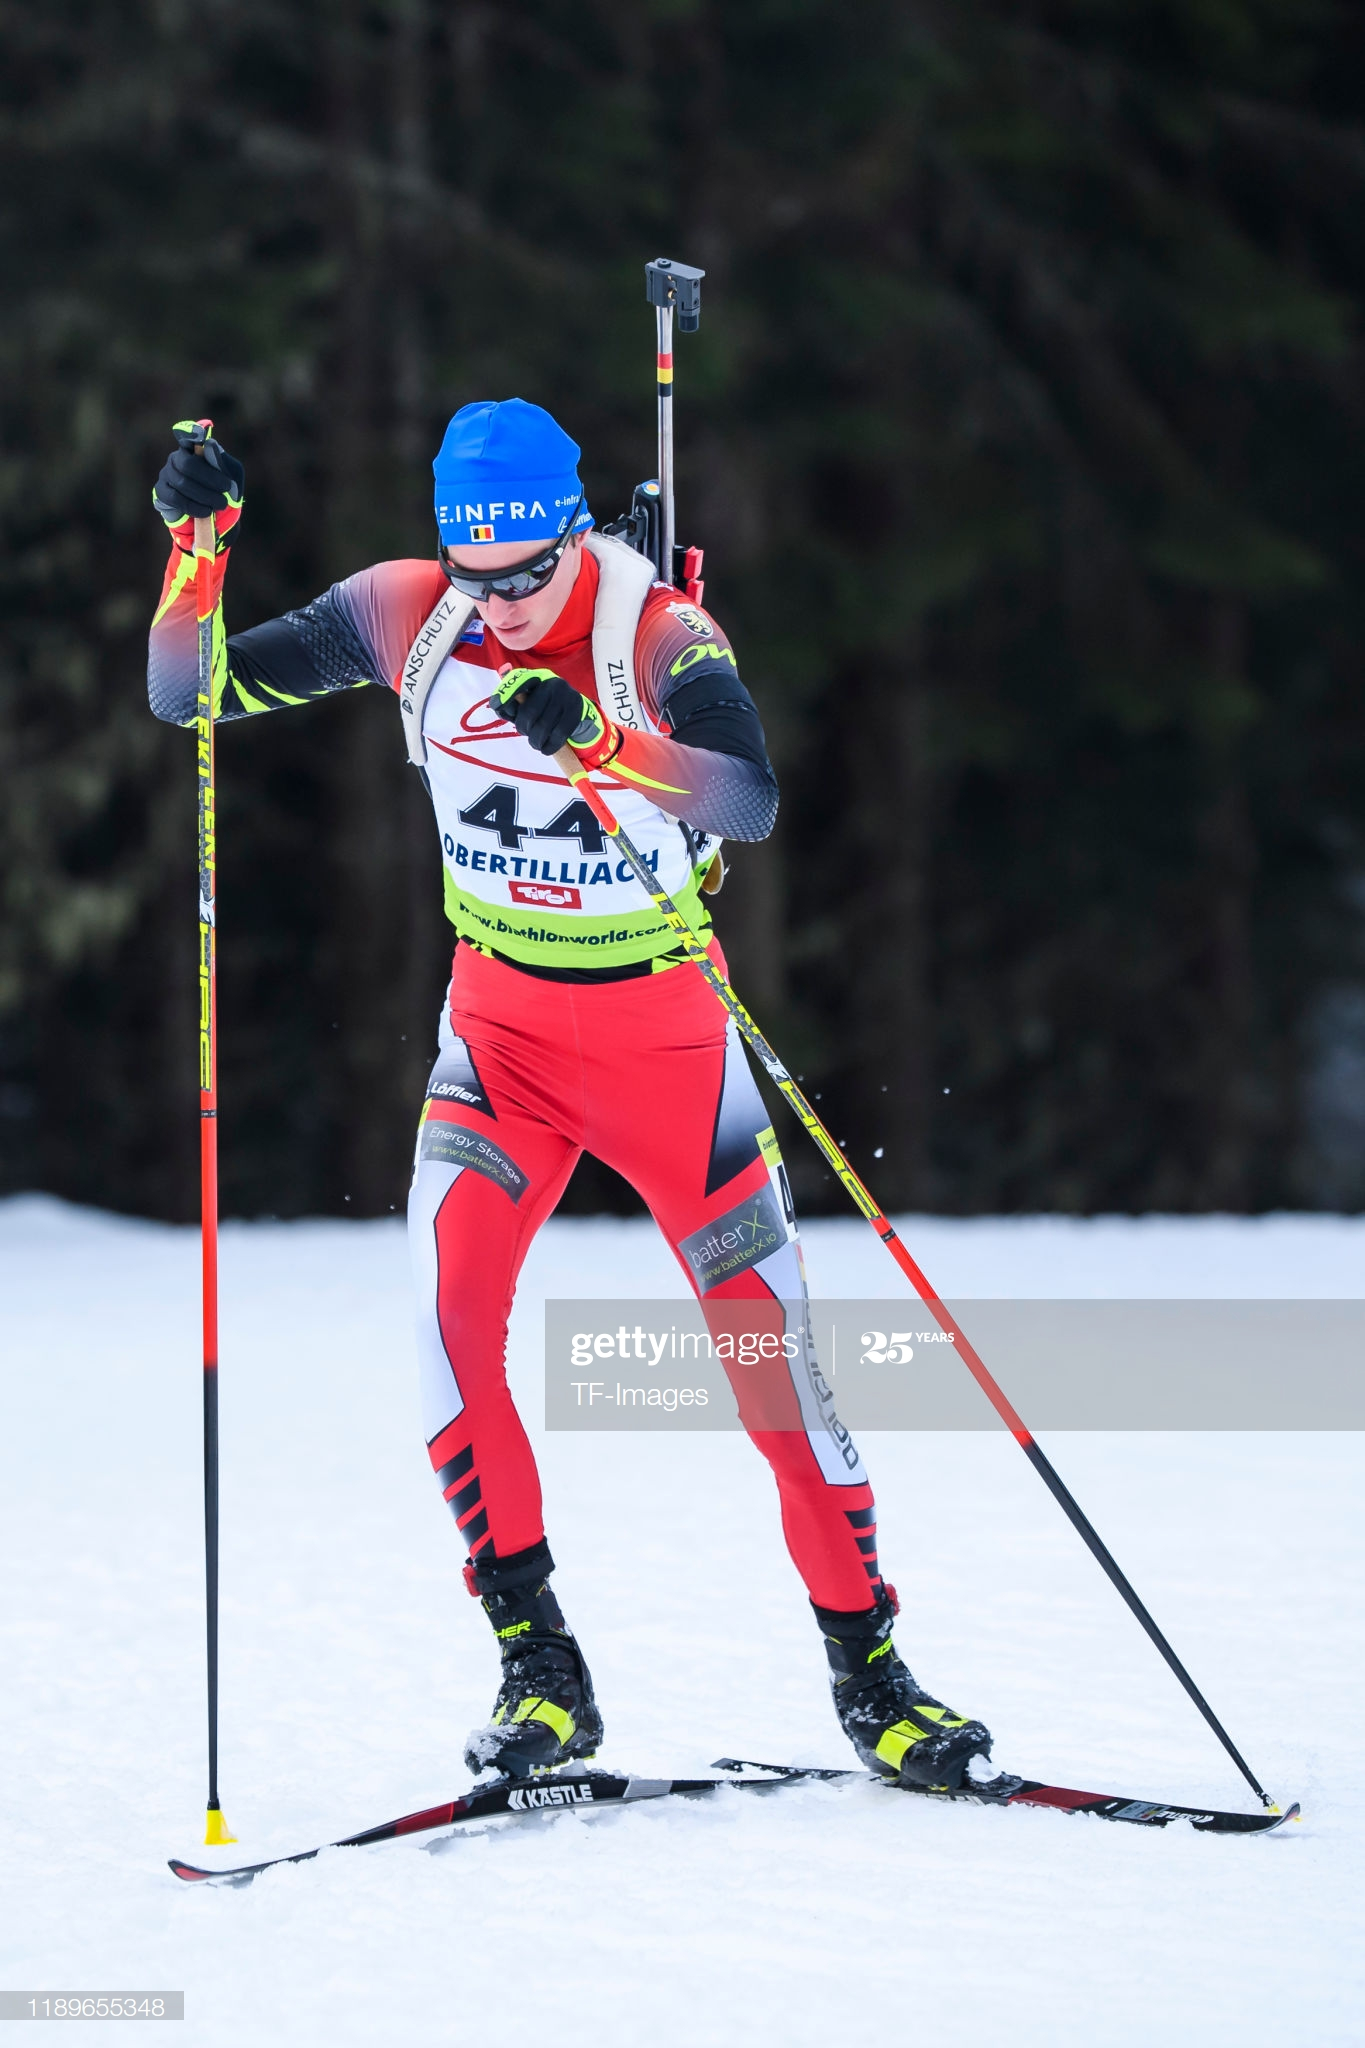 LIENZ, AUSTRIA - DECEMBER 18: (BILD ZEITUNG OUT) Pjotr Karel A Dielen of Belgium in action competes during the Men 15 km Short Individual of the IBU Cup Biathlon Obertilliach on December 18, 2019 in Obertilliach near Lienz, Austria. (Photo by TF-Images/Getty Images)